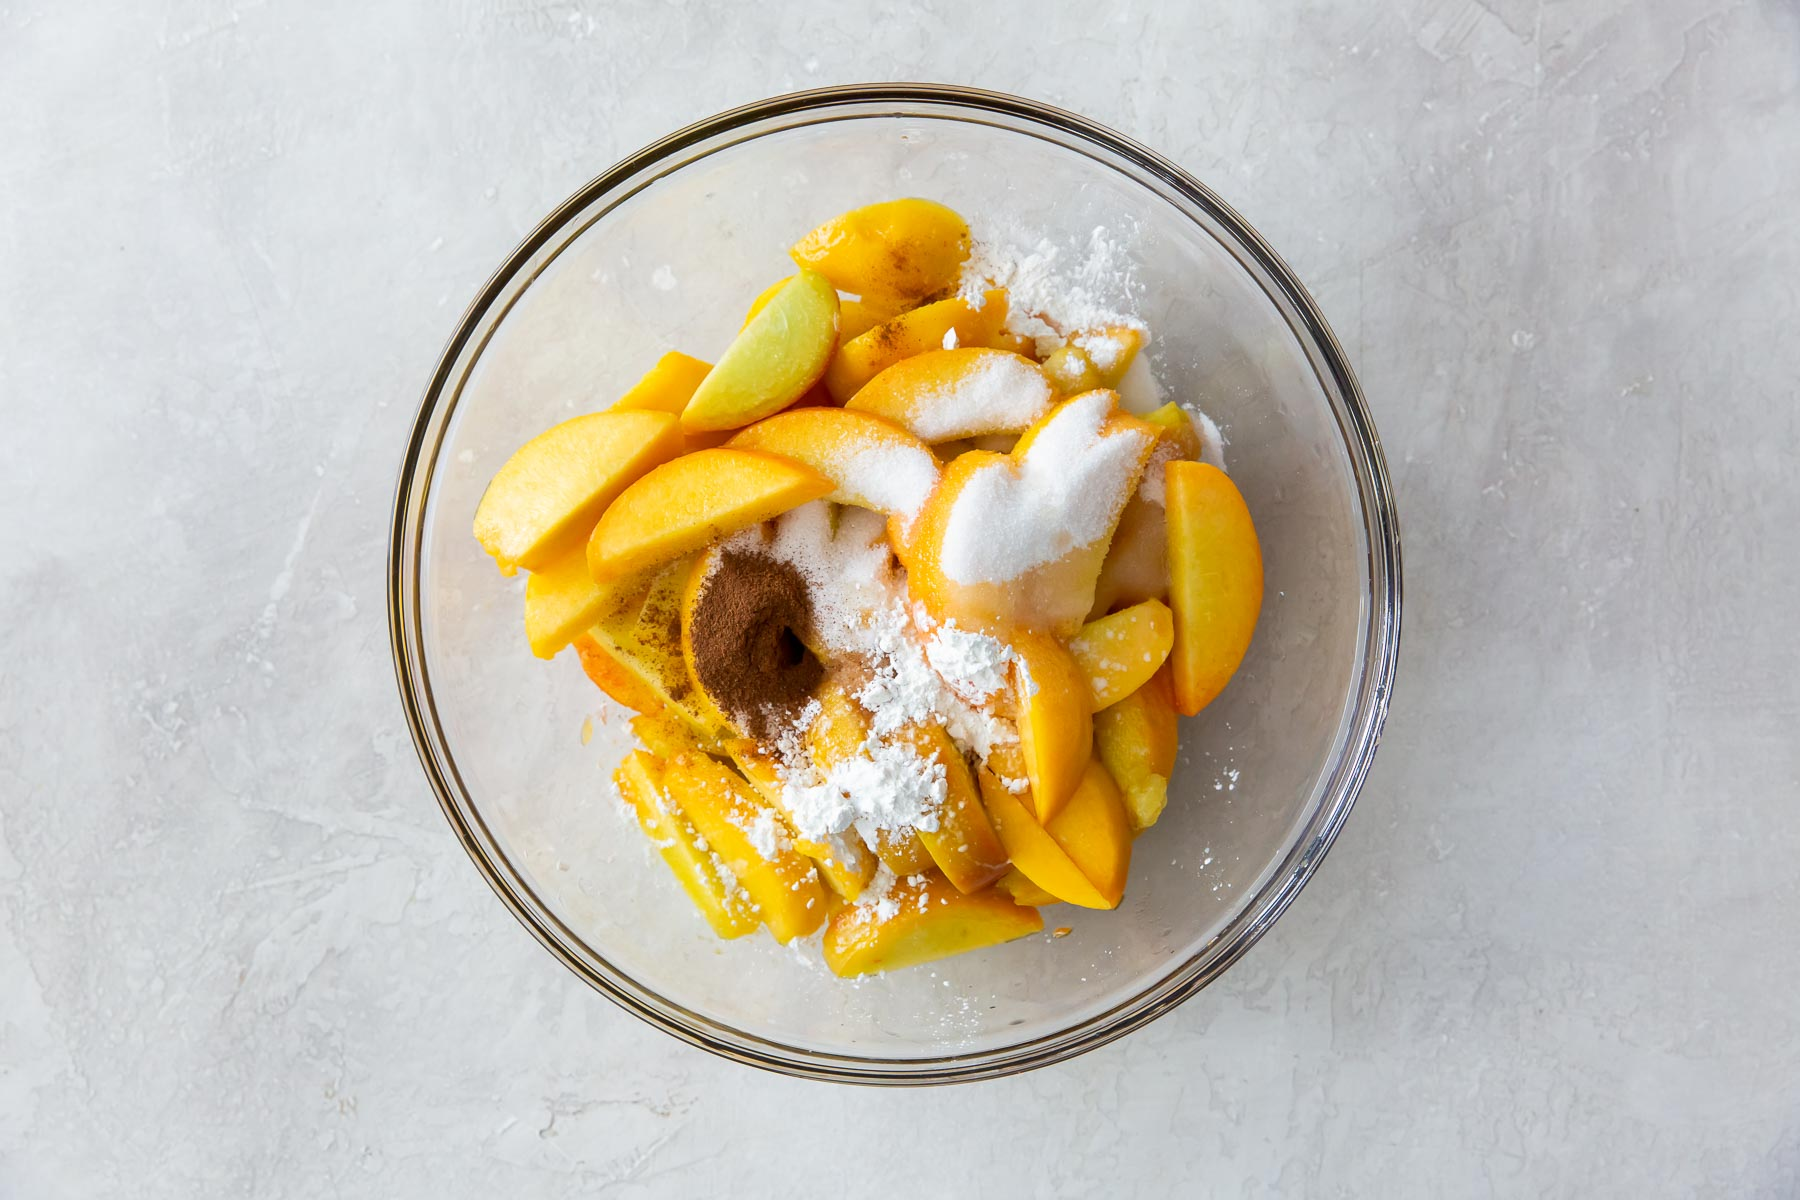 peaches and other filling ingredients in mixing bowl